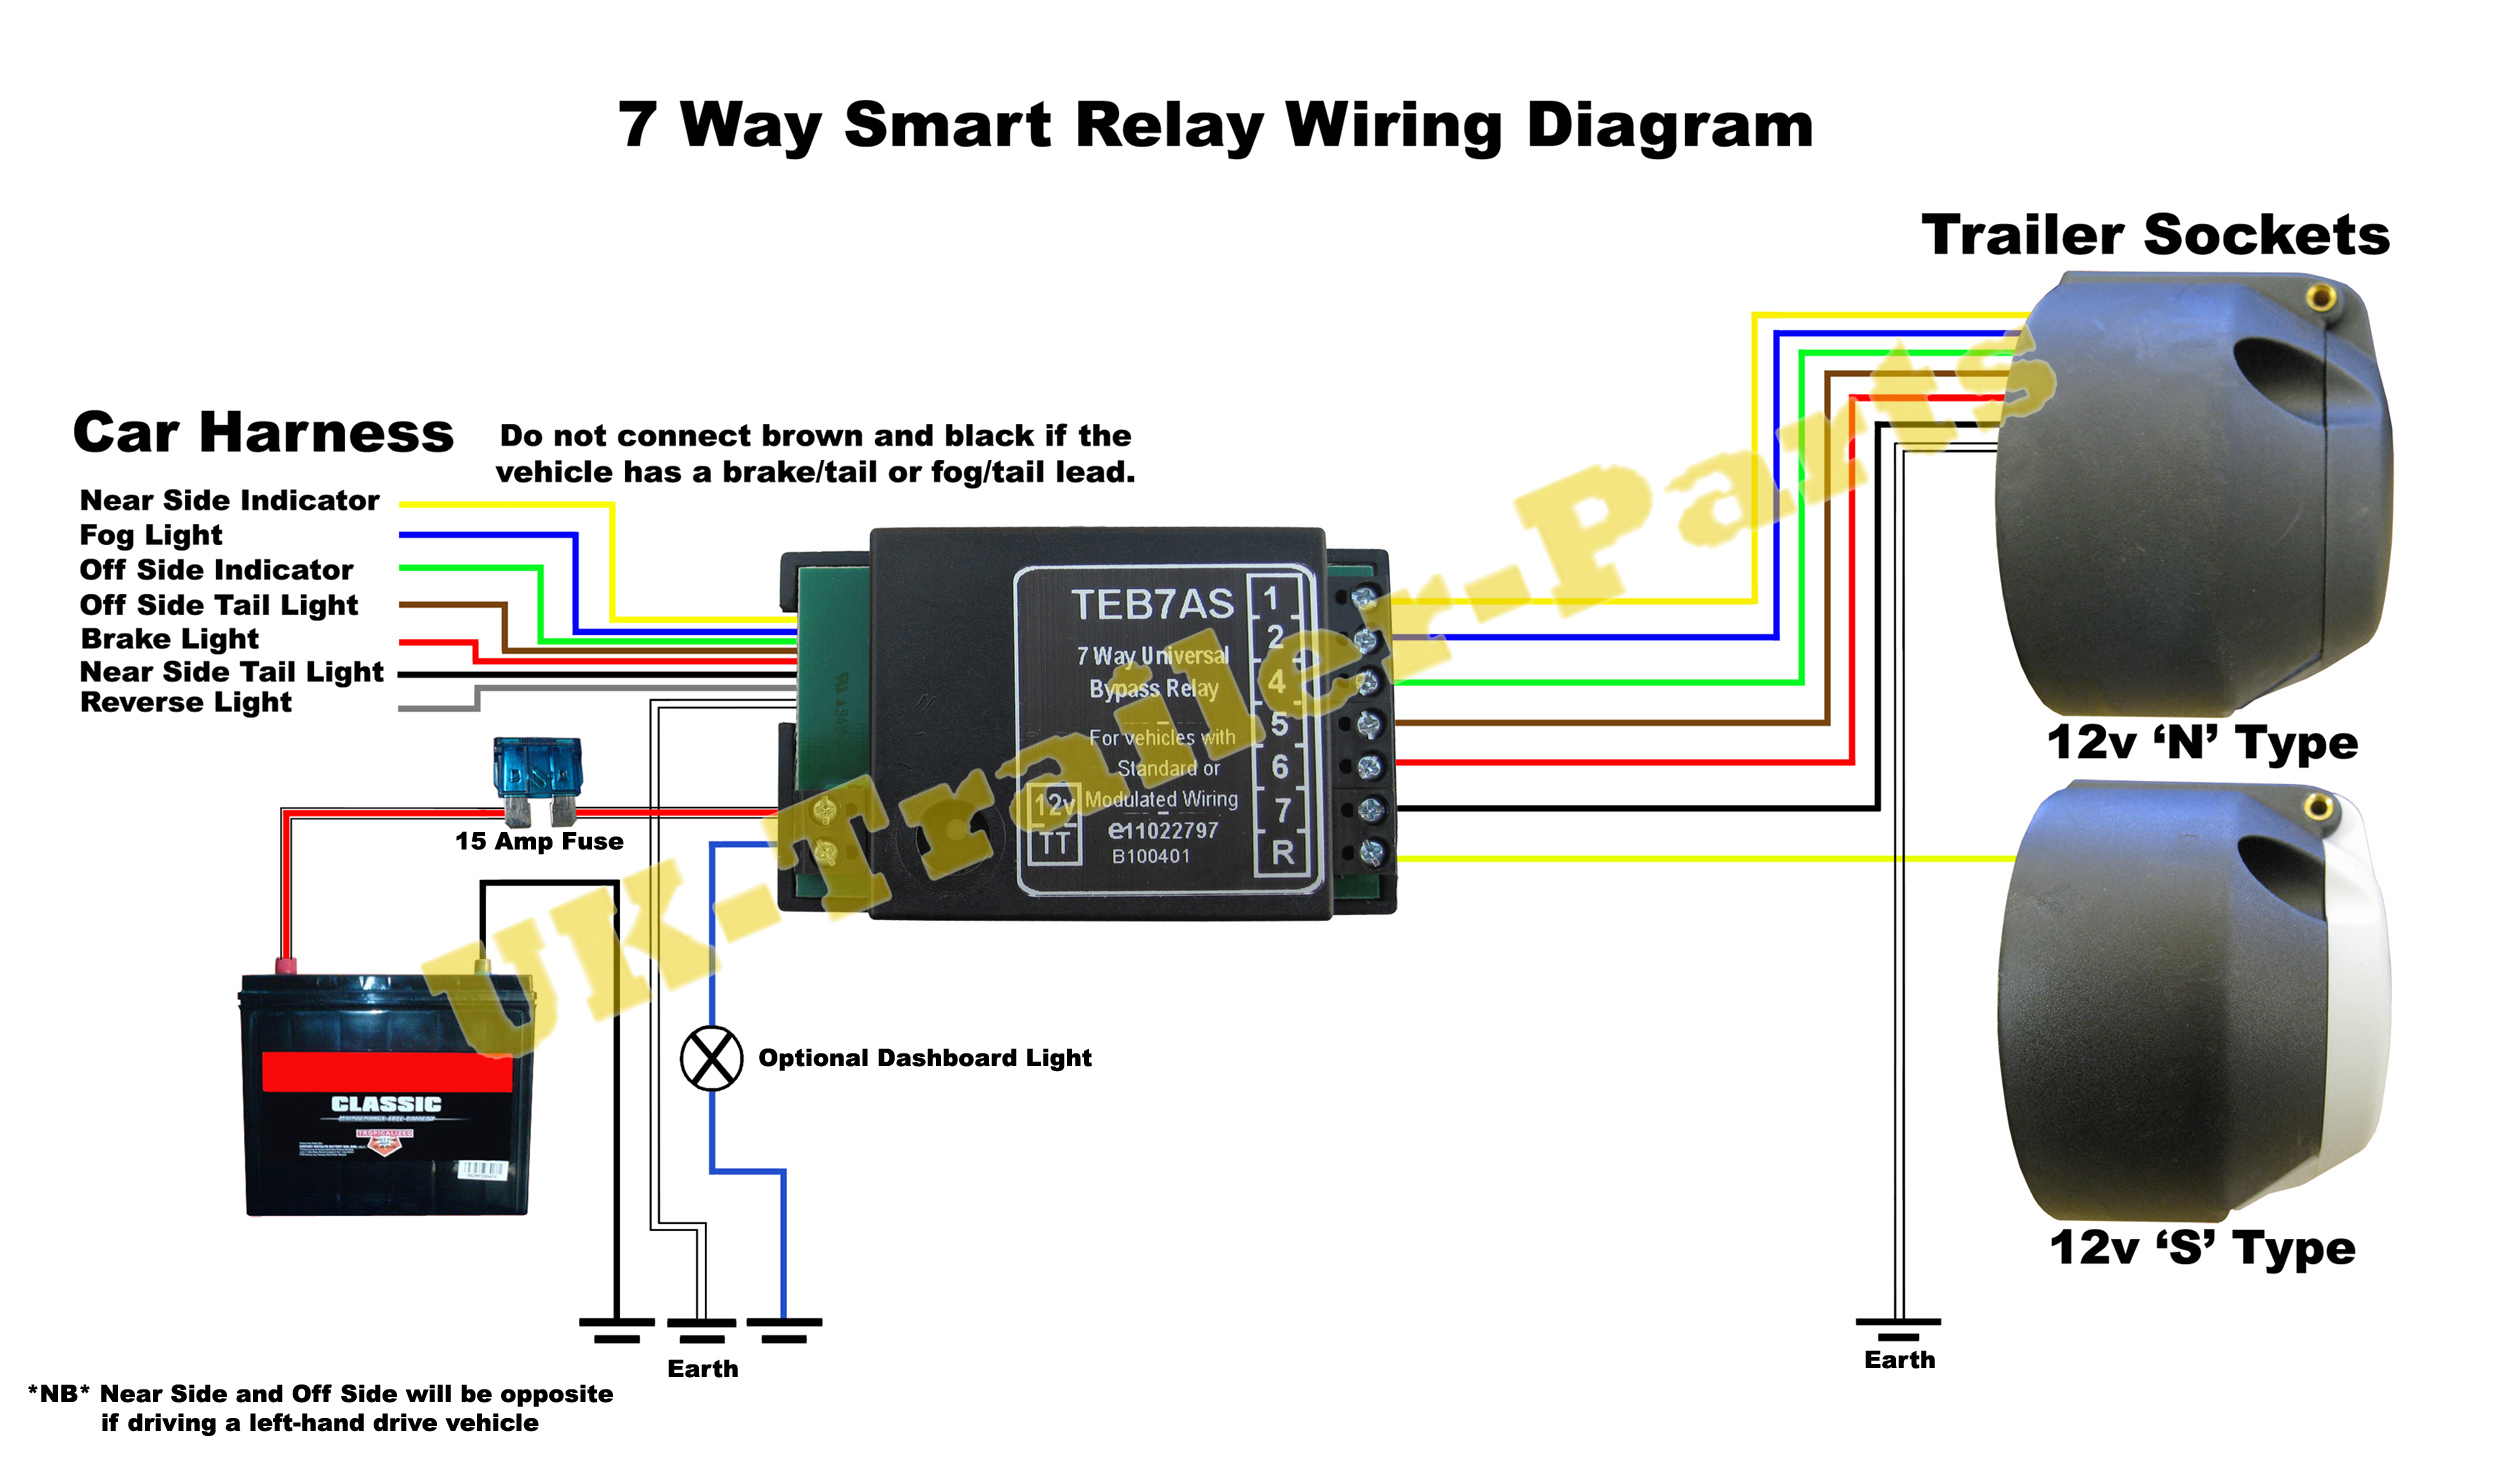 smart relay wiring diagram2 7 way universal bypass relay wiring diagram uk trailer parts peugeot 307 towbar wiring diagram at gsmportal.co